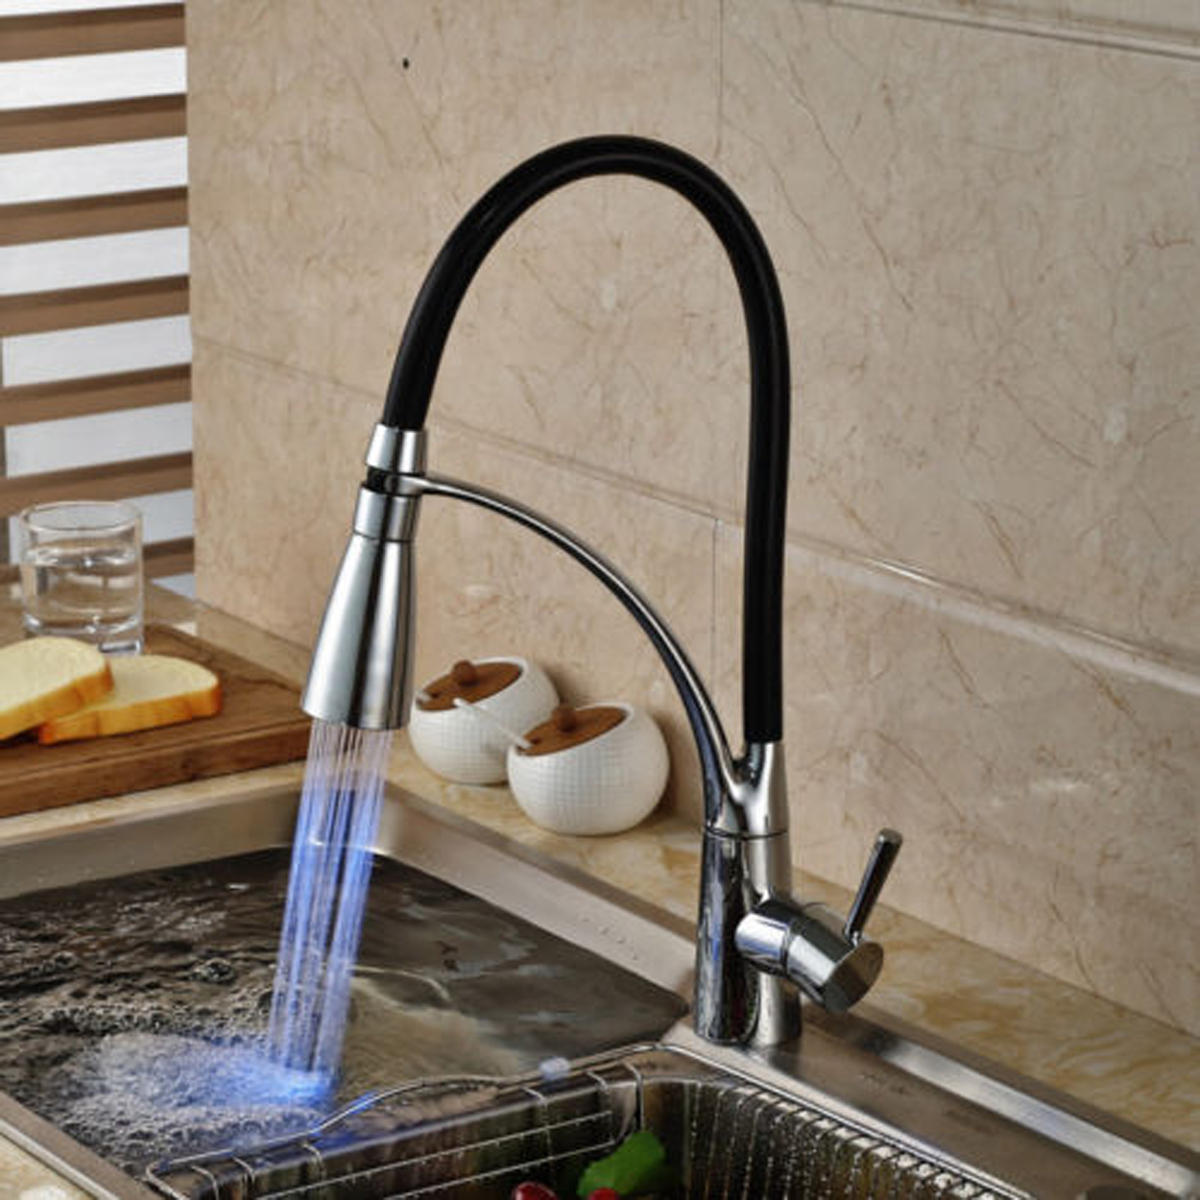 led kitchen sink faucet black chrome plated cold hot pull out spray rh banggood com chrome kitchen sink chrome kitchen sink faucet with pull-out sprayer